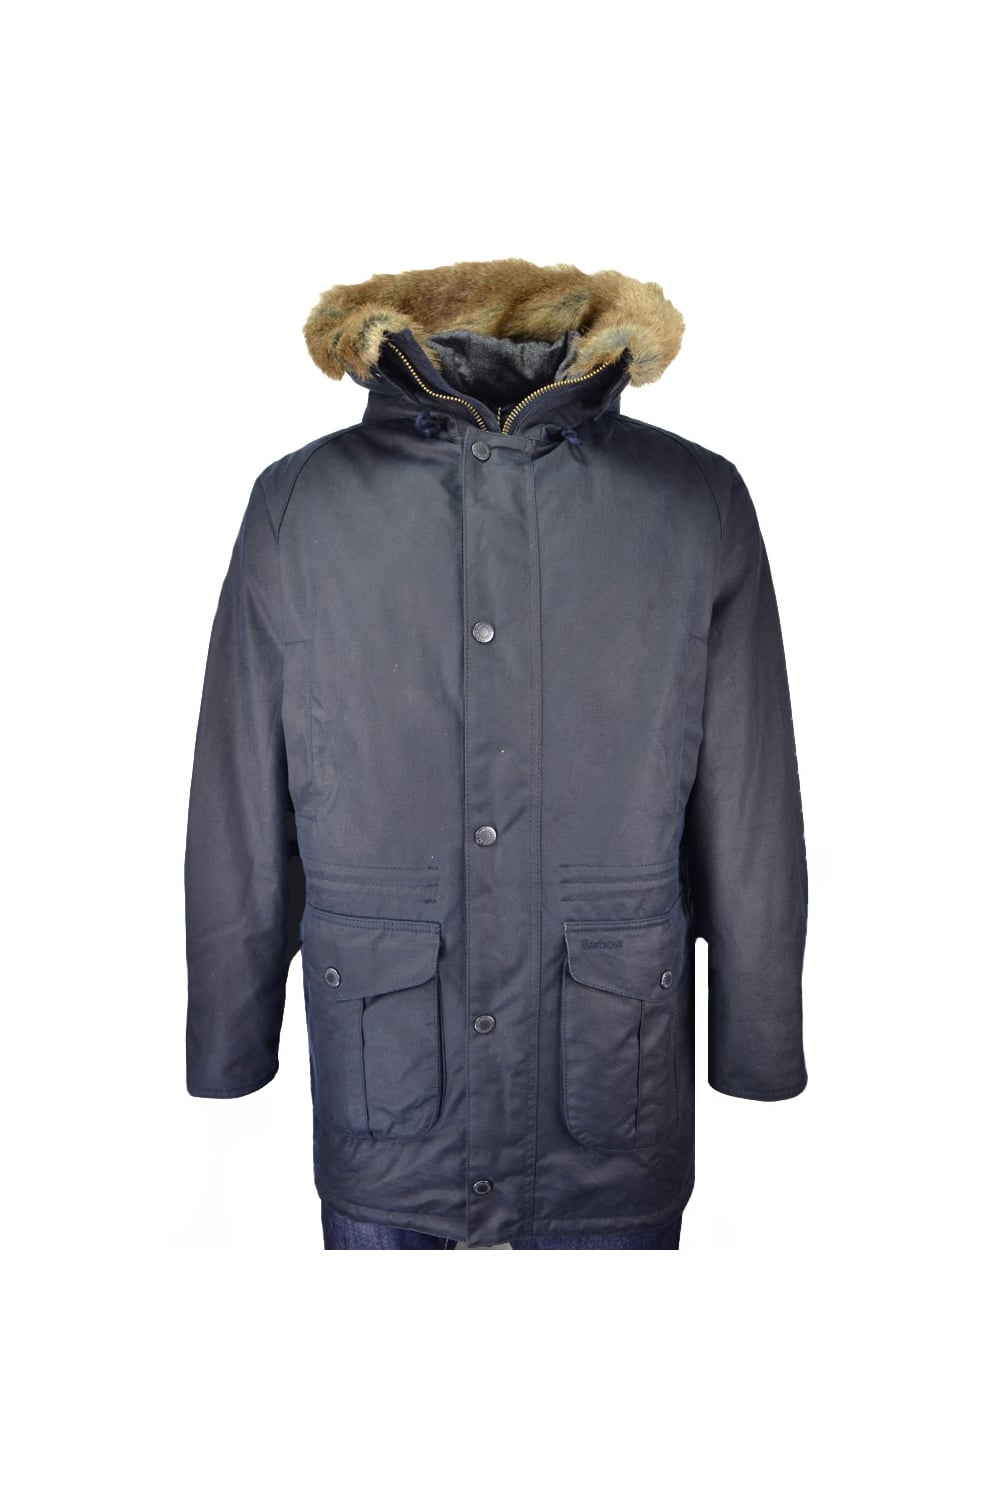 19b79a50319d Barbour Gisburne Waxed Hooded Parka Jacket - Clothing from Michael ...